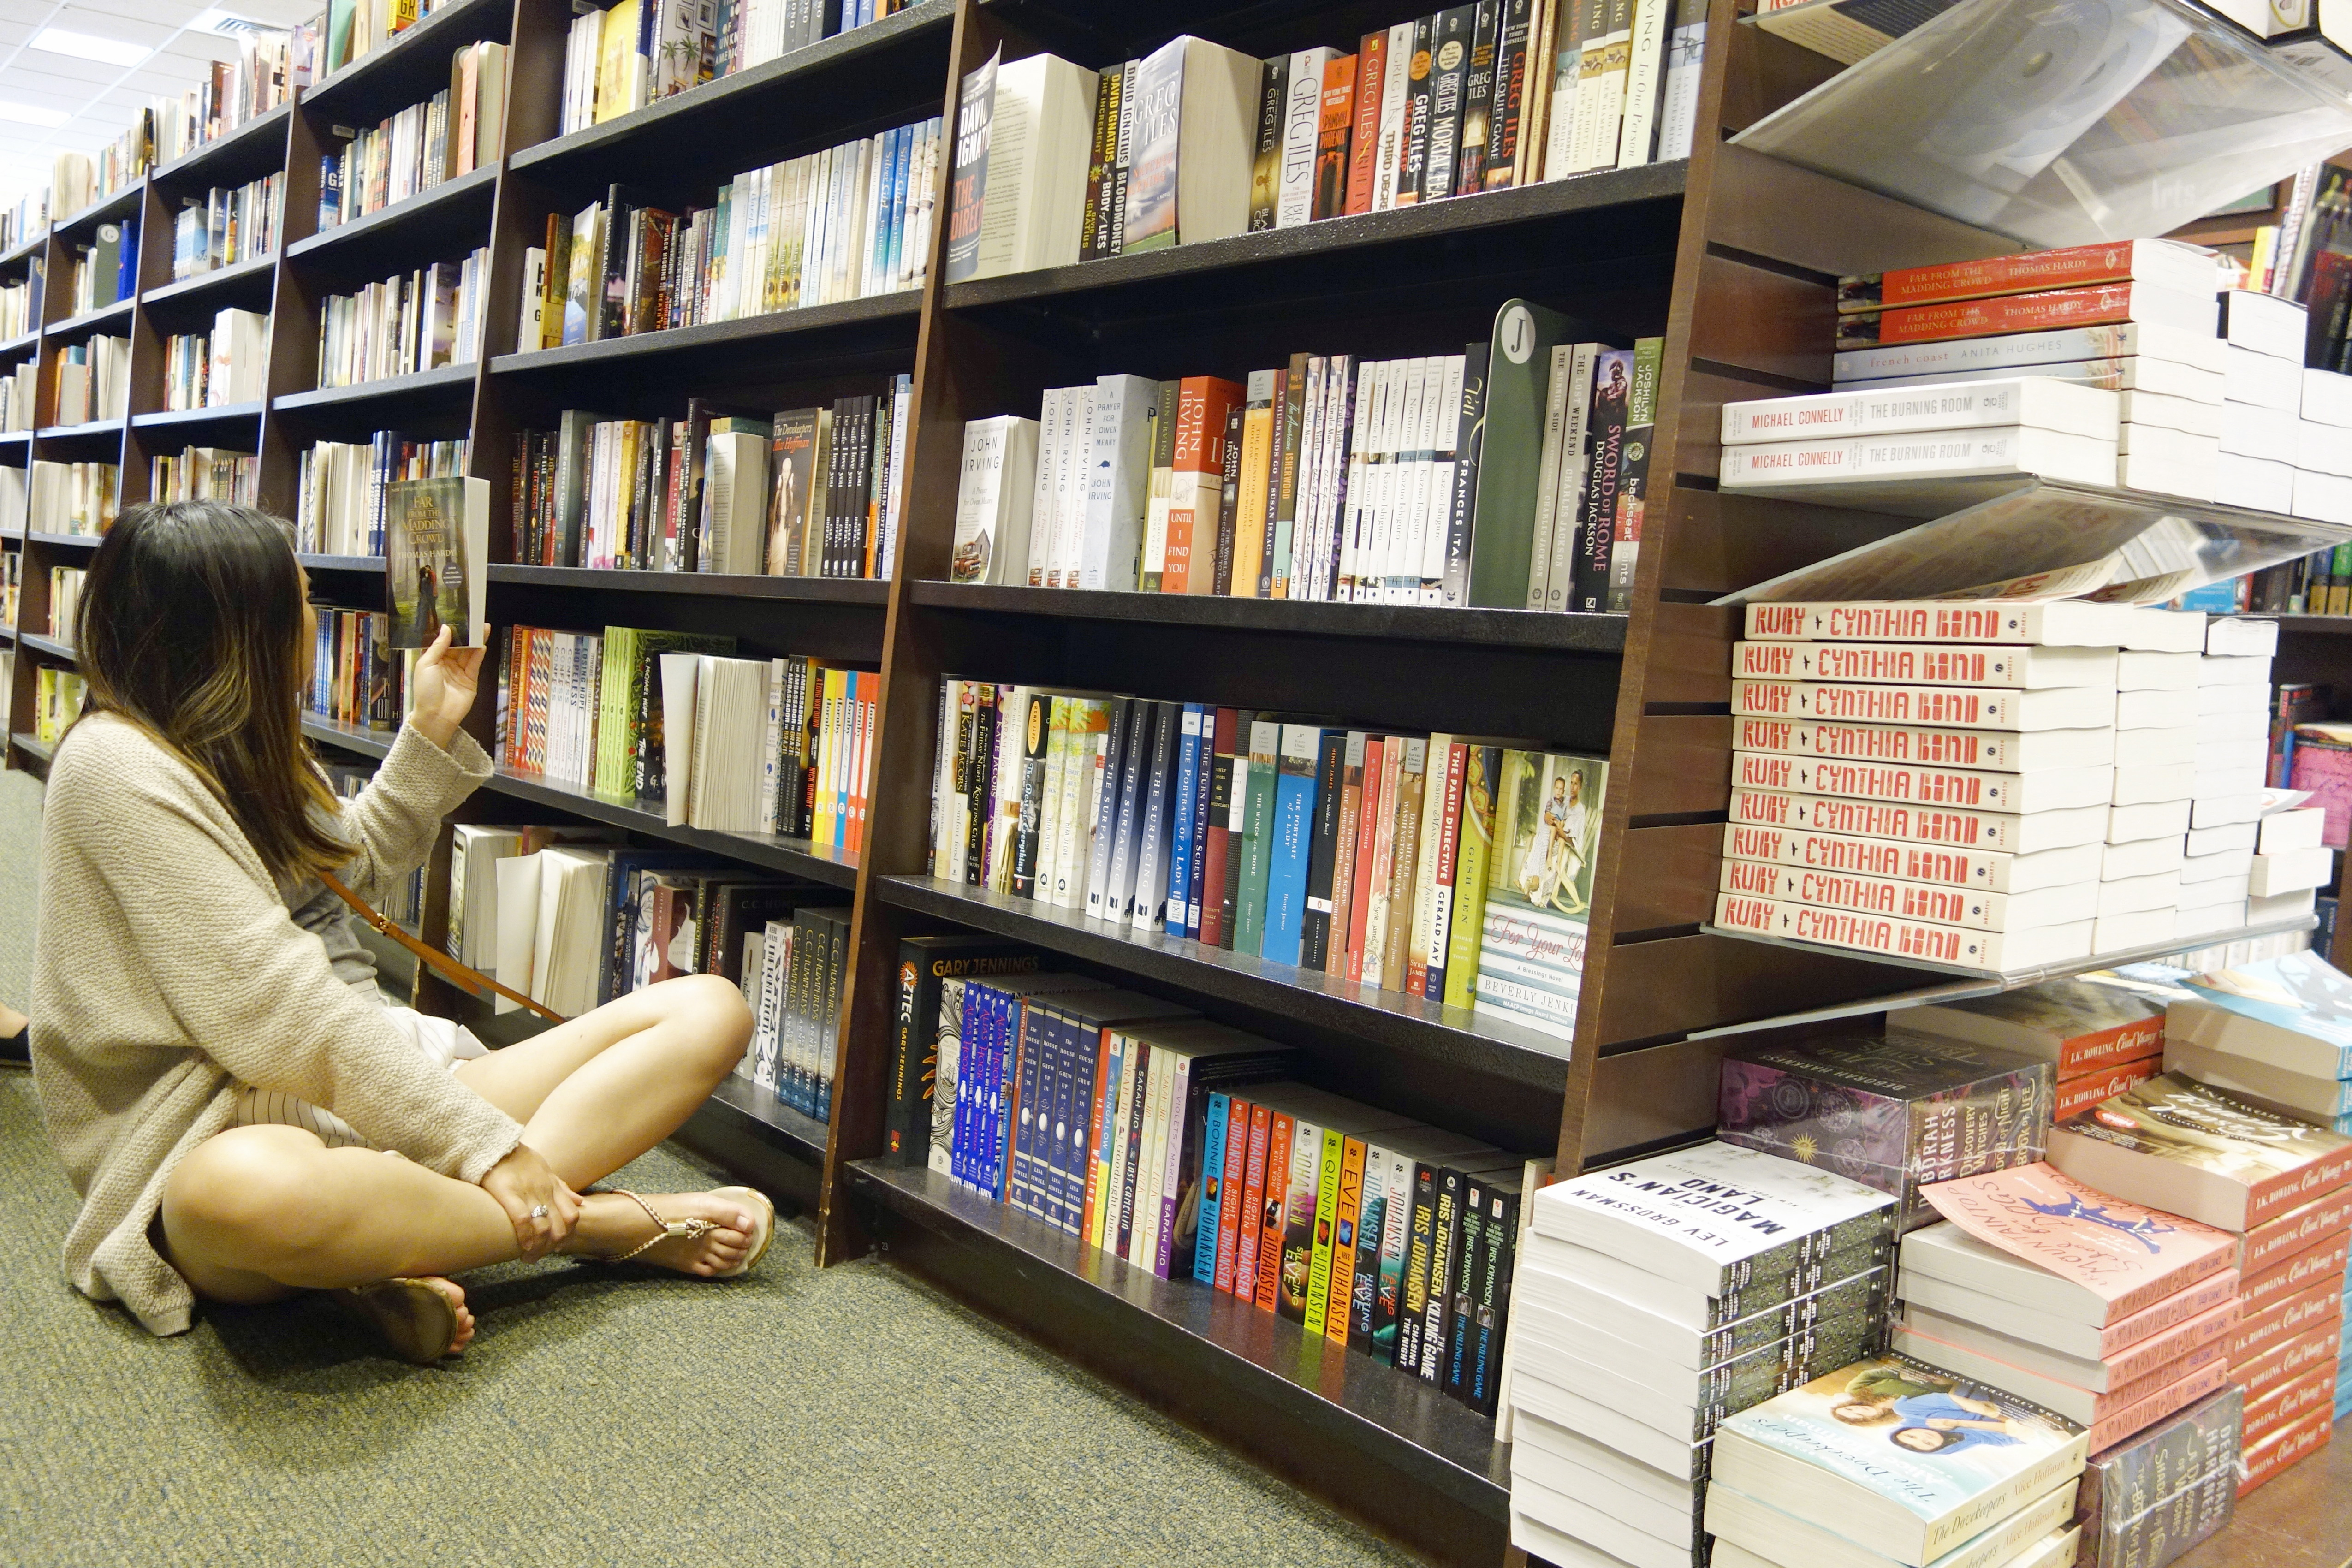 Woman Looking at Books in Bookstore, Boston, Massachusetts, United States